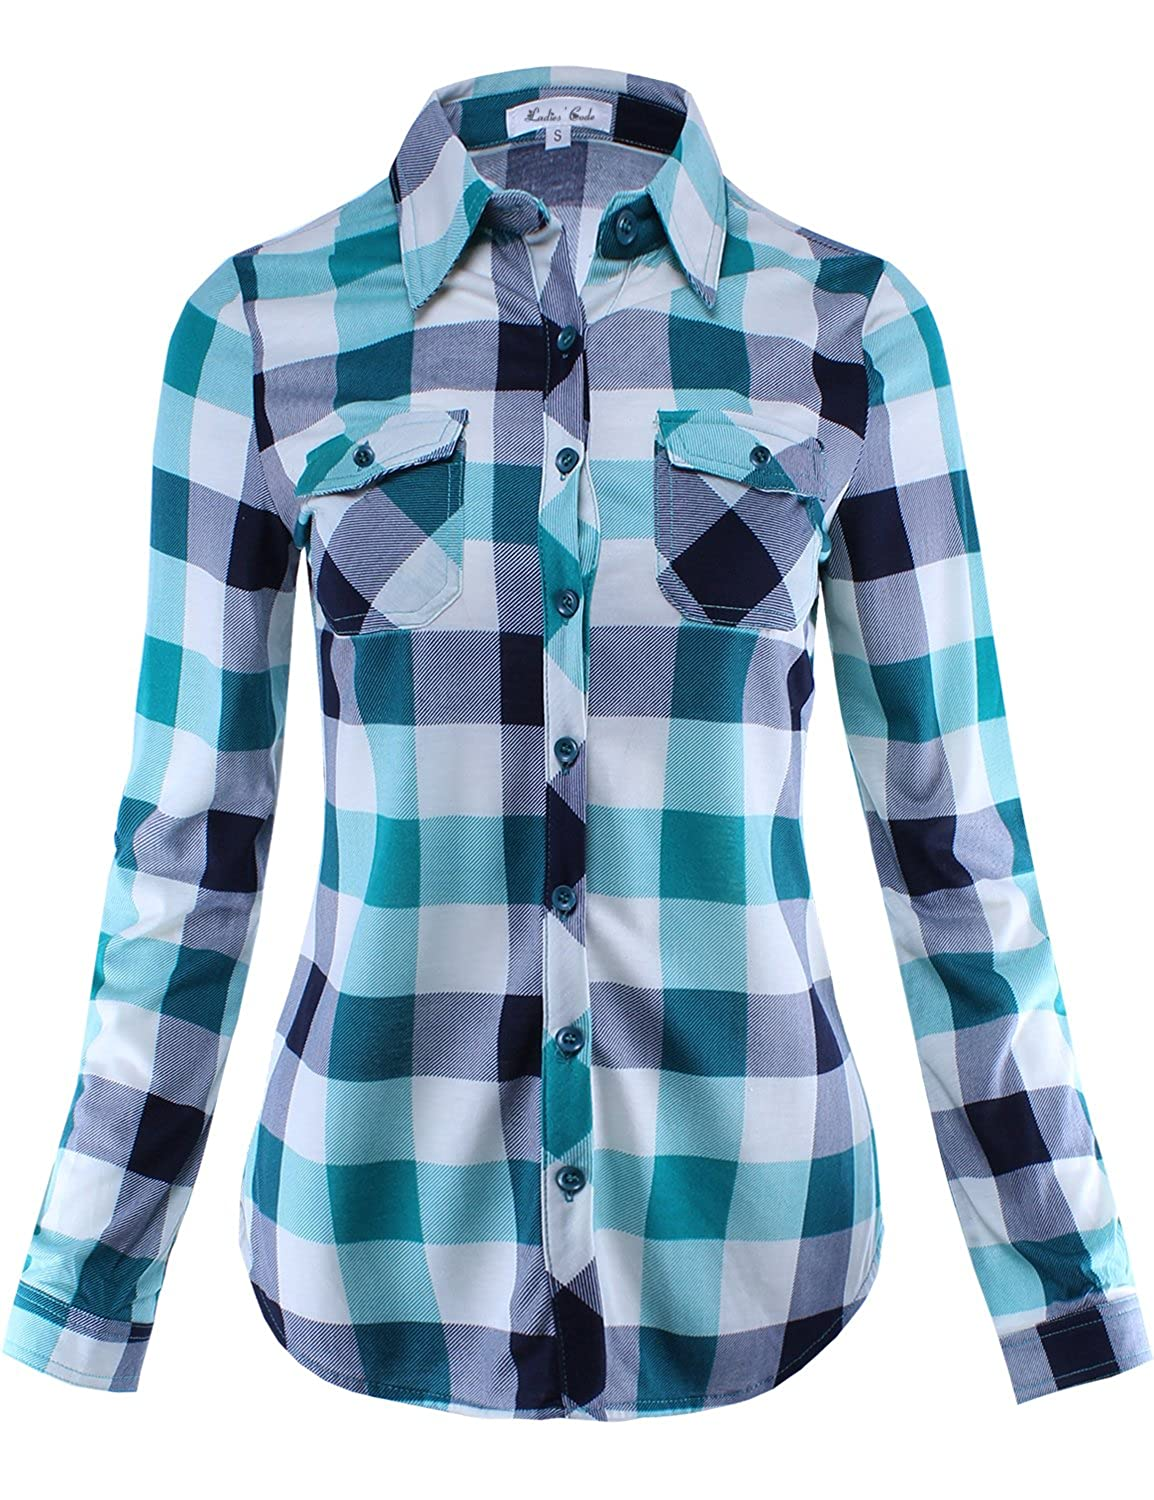 Ladies' Code Women's Checkered Plaid Button Down Shirt Top with Roll Up Sleeves